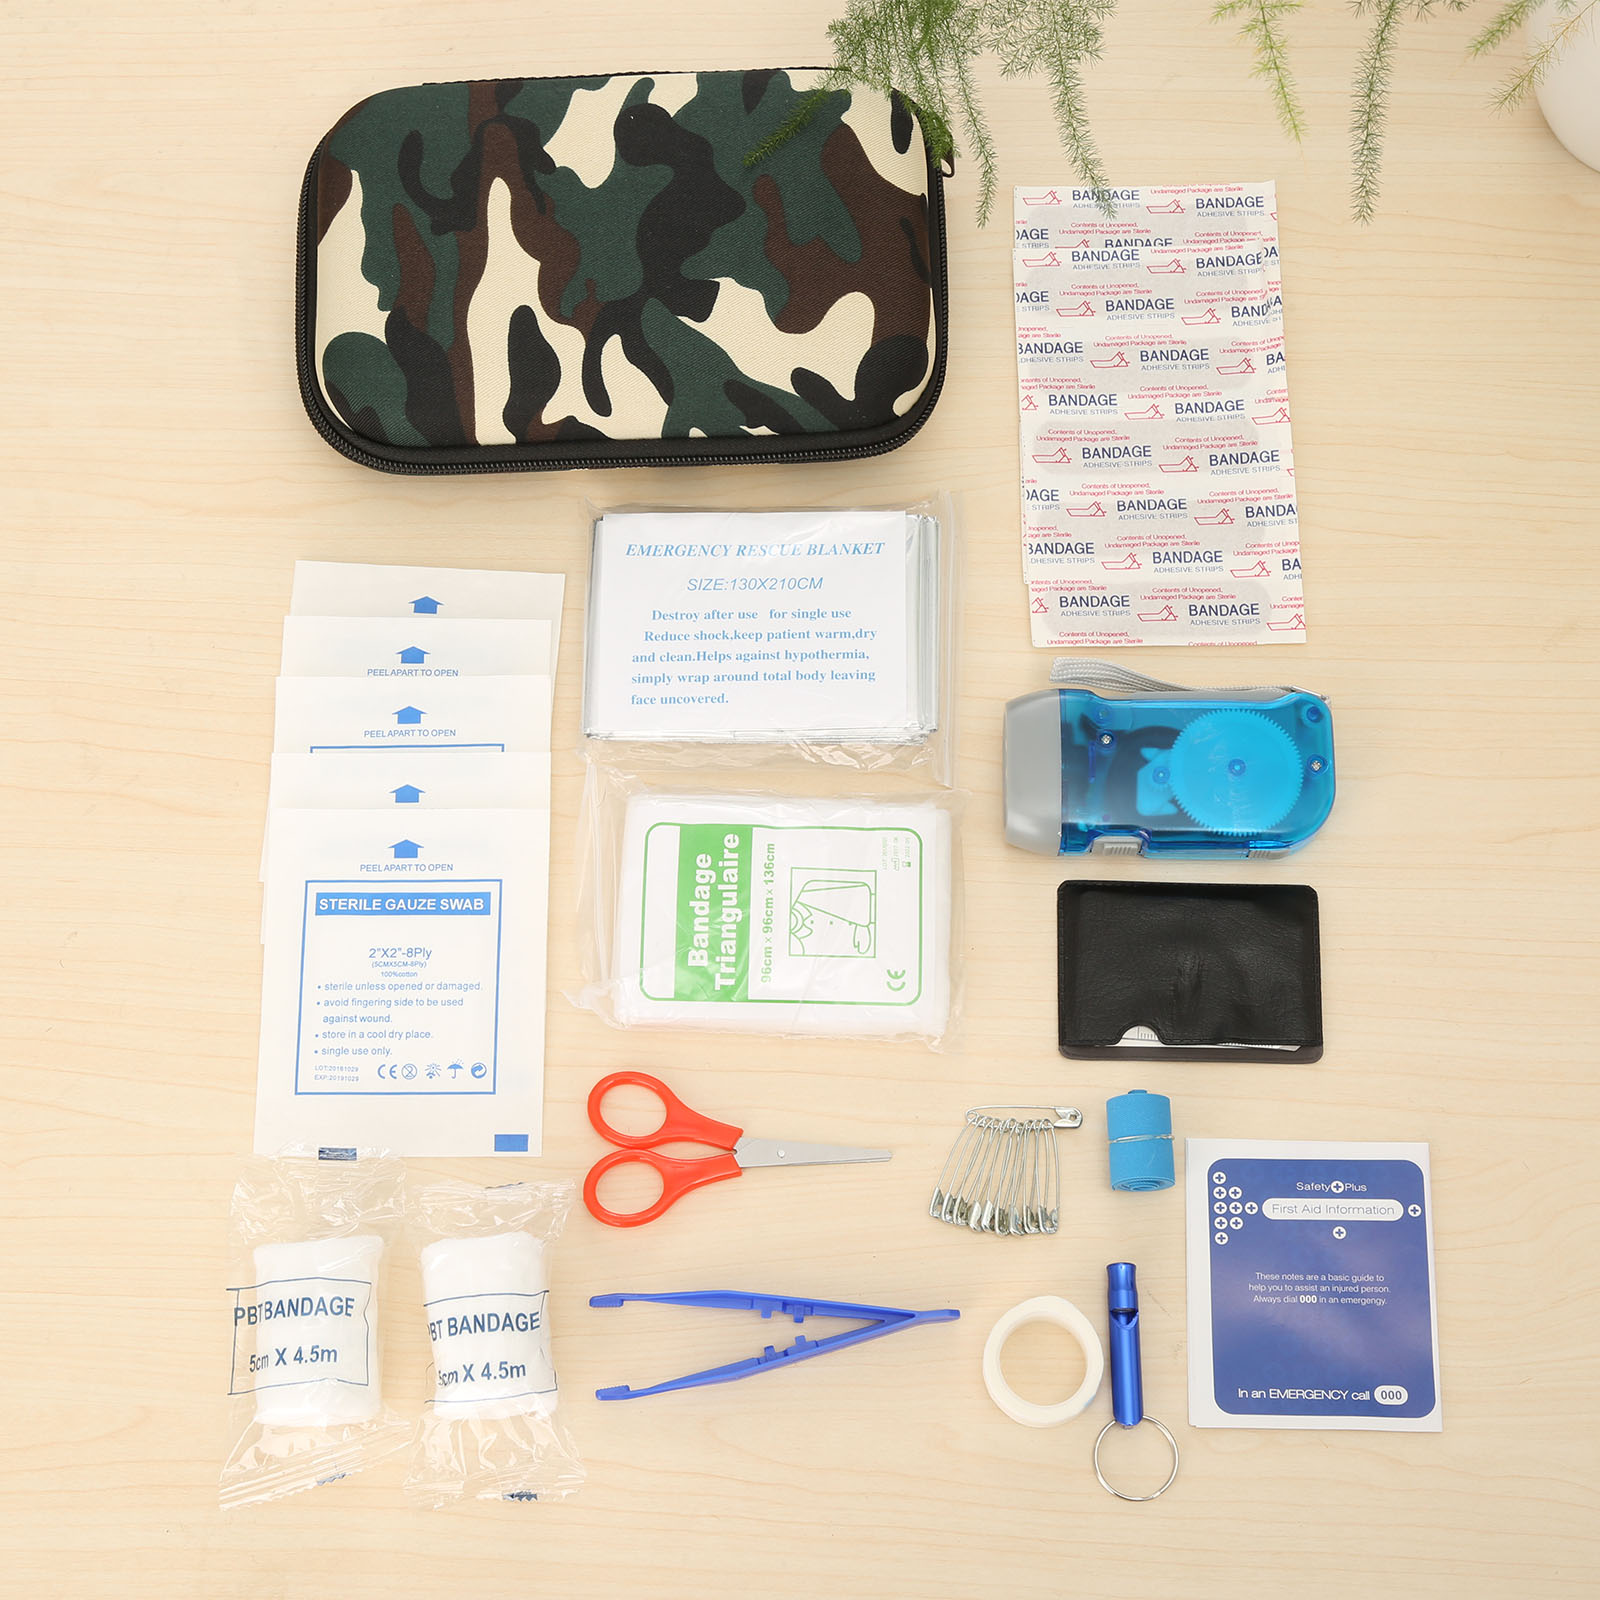 16Set(39pcs) Travel/Car First Aid Kit Eva Bag Medical Emergency Survival Kits Pouch Portable Treatment Pack world map camouflage